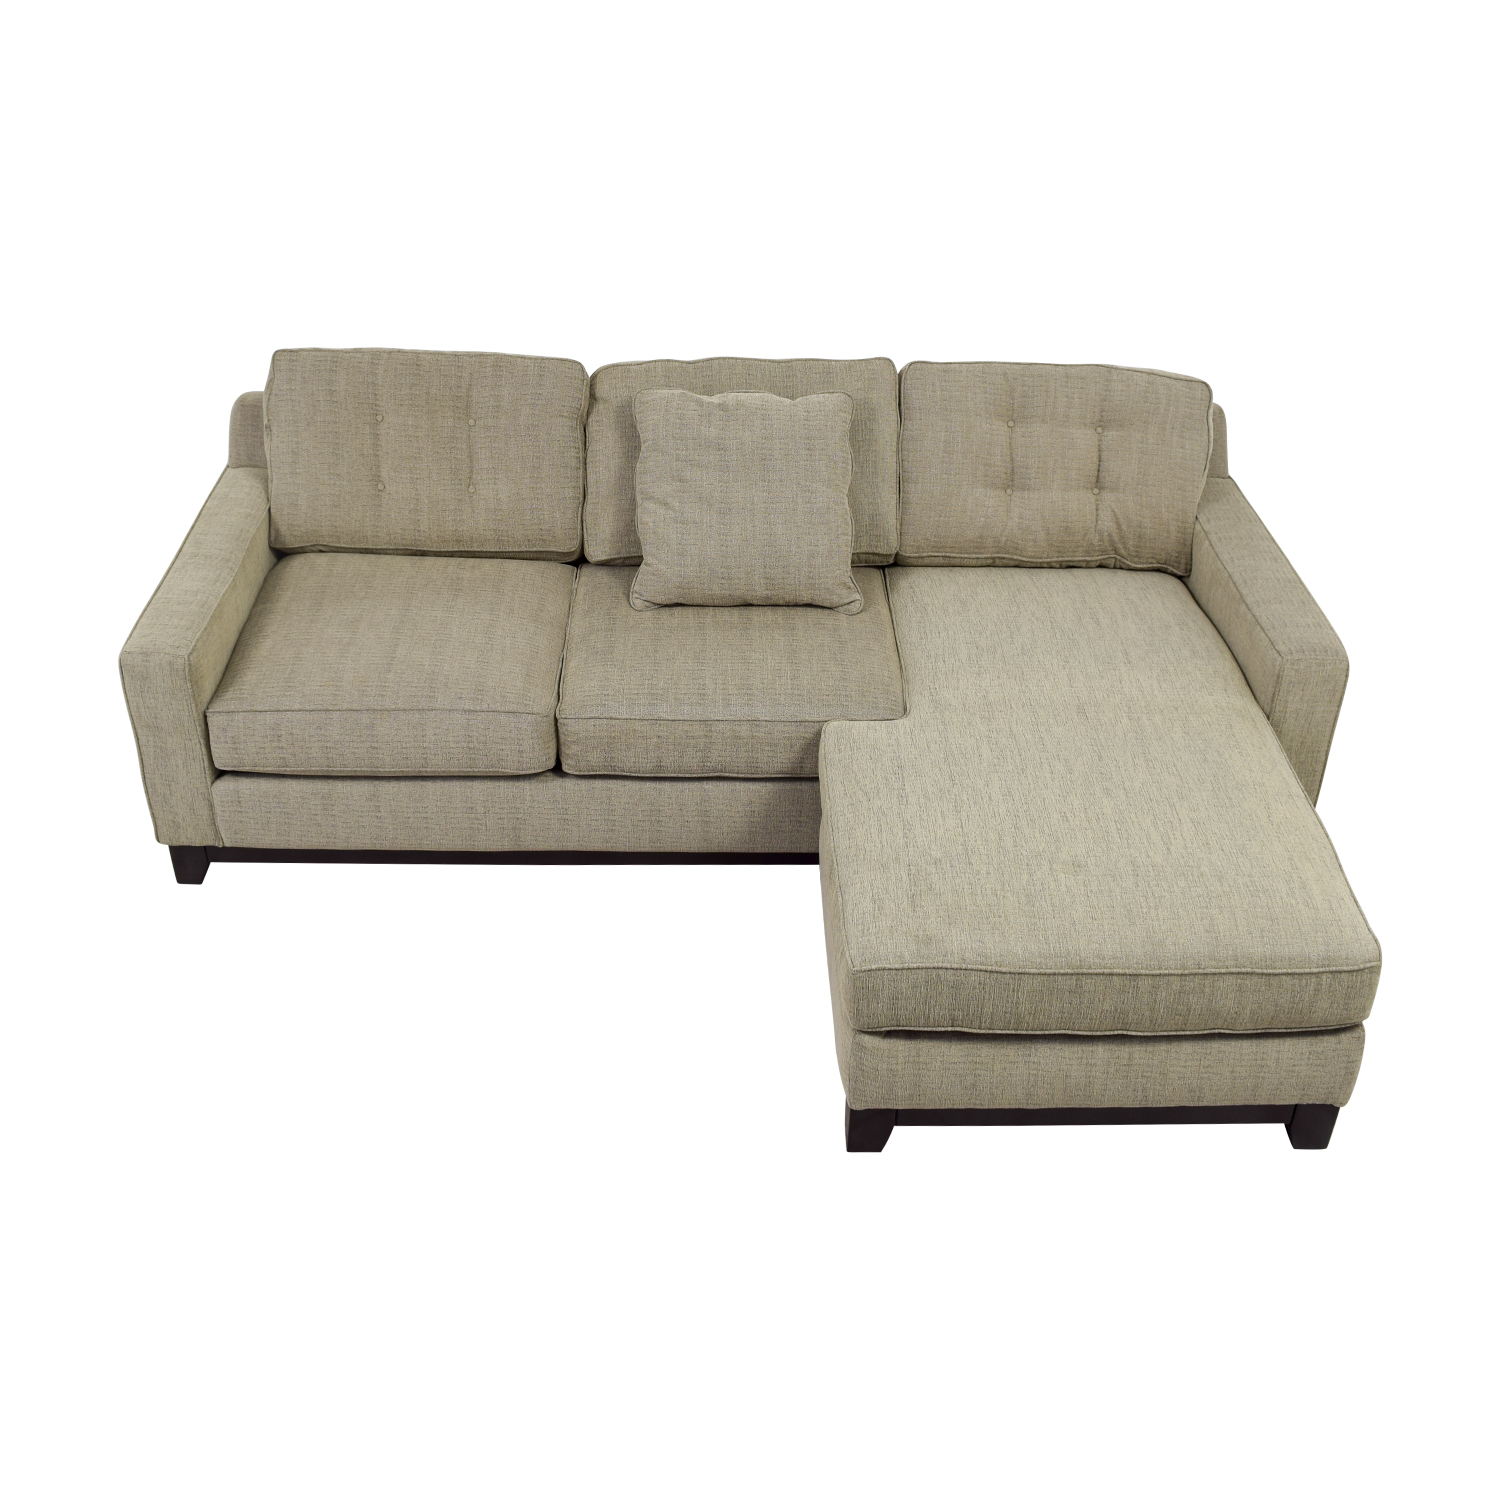 used sofa red leather modular sectional sofas for ottawa couch